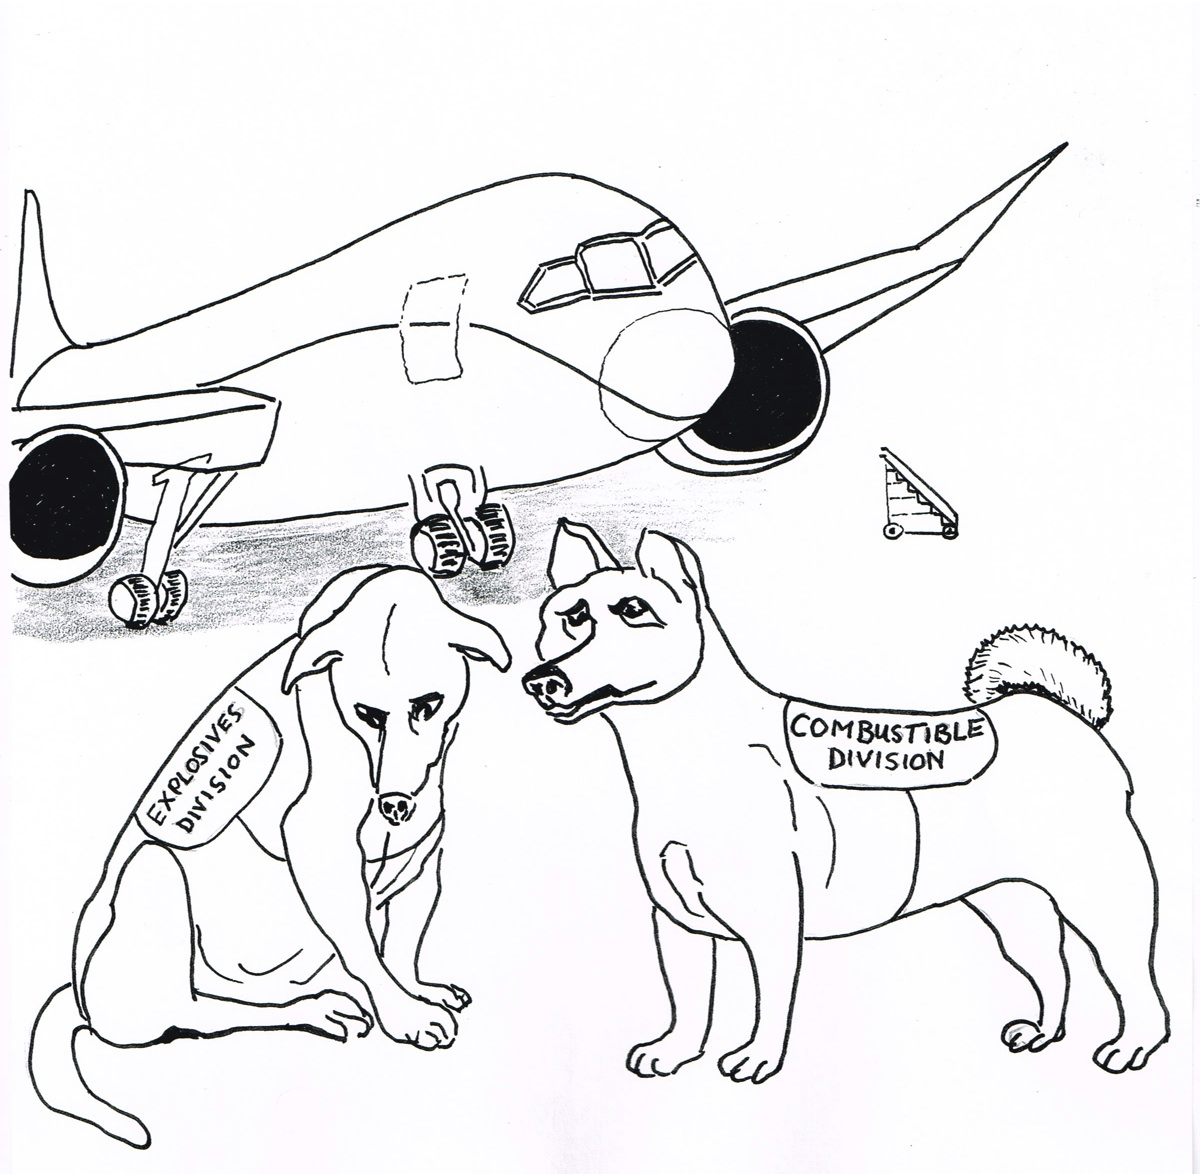 1201x1174 Give The Dogs A Boeing! Hung, Drawn And Cultured